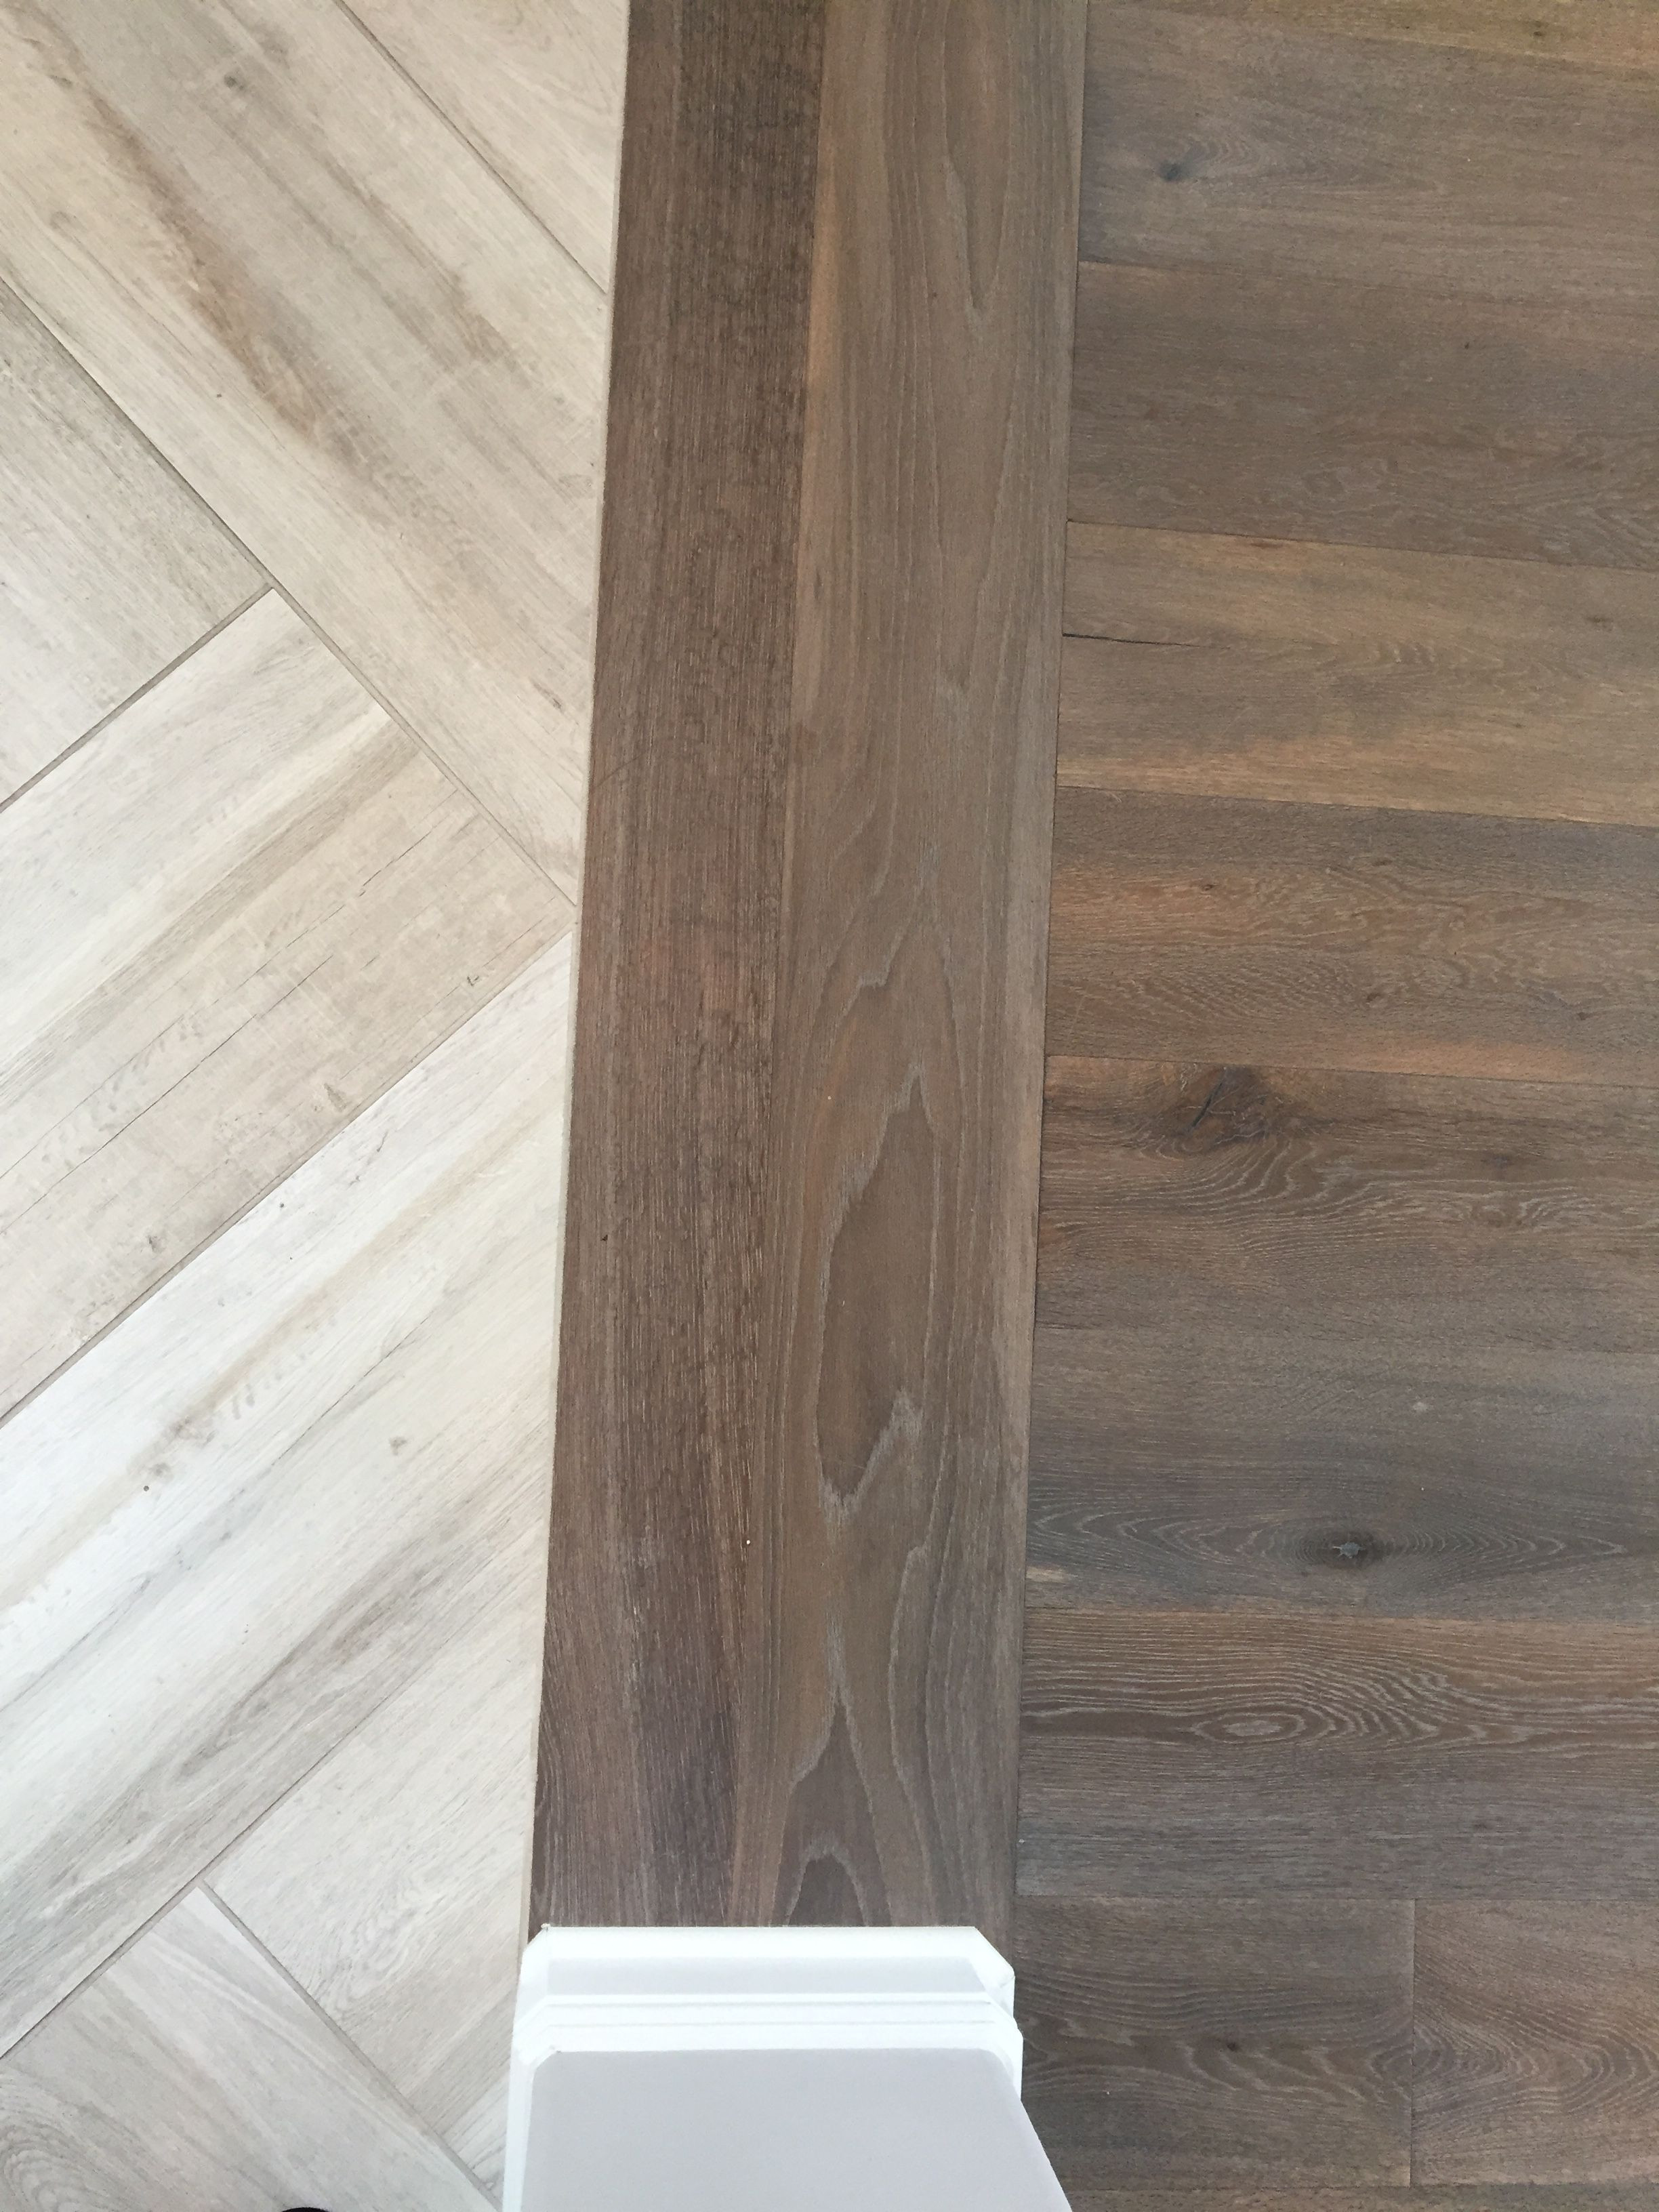 should hardwood flooring laid direction of floor transition laminate to herringbone tile pattern model regarding floor transition laminate to herringbone tile pattern